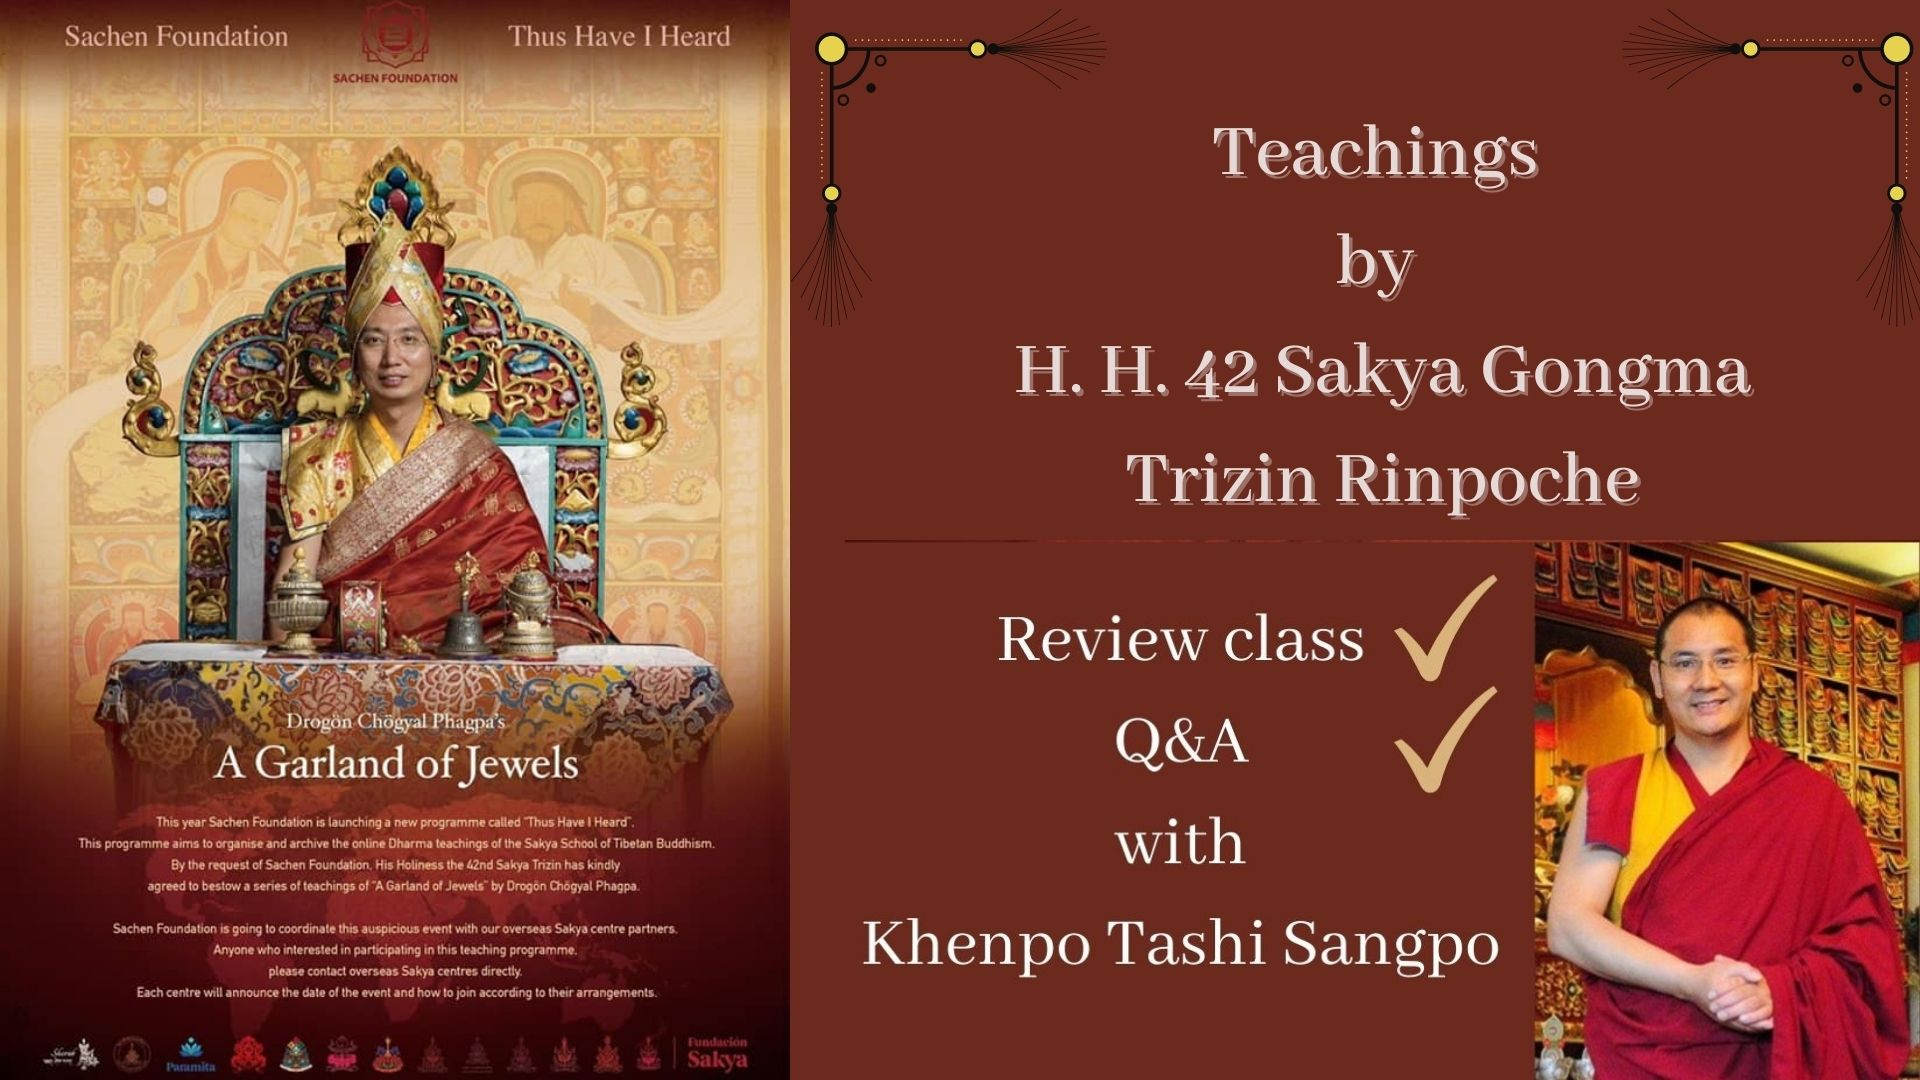 THUS I HAVE HEARD, SESSION 8 AND LHABAB DUCHEN